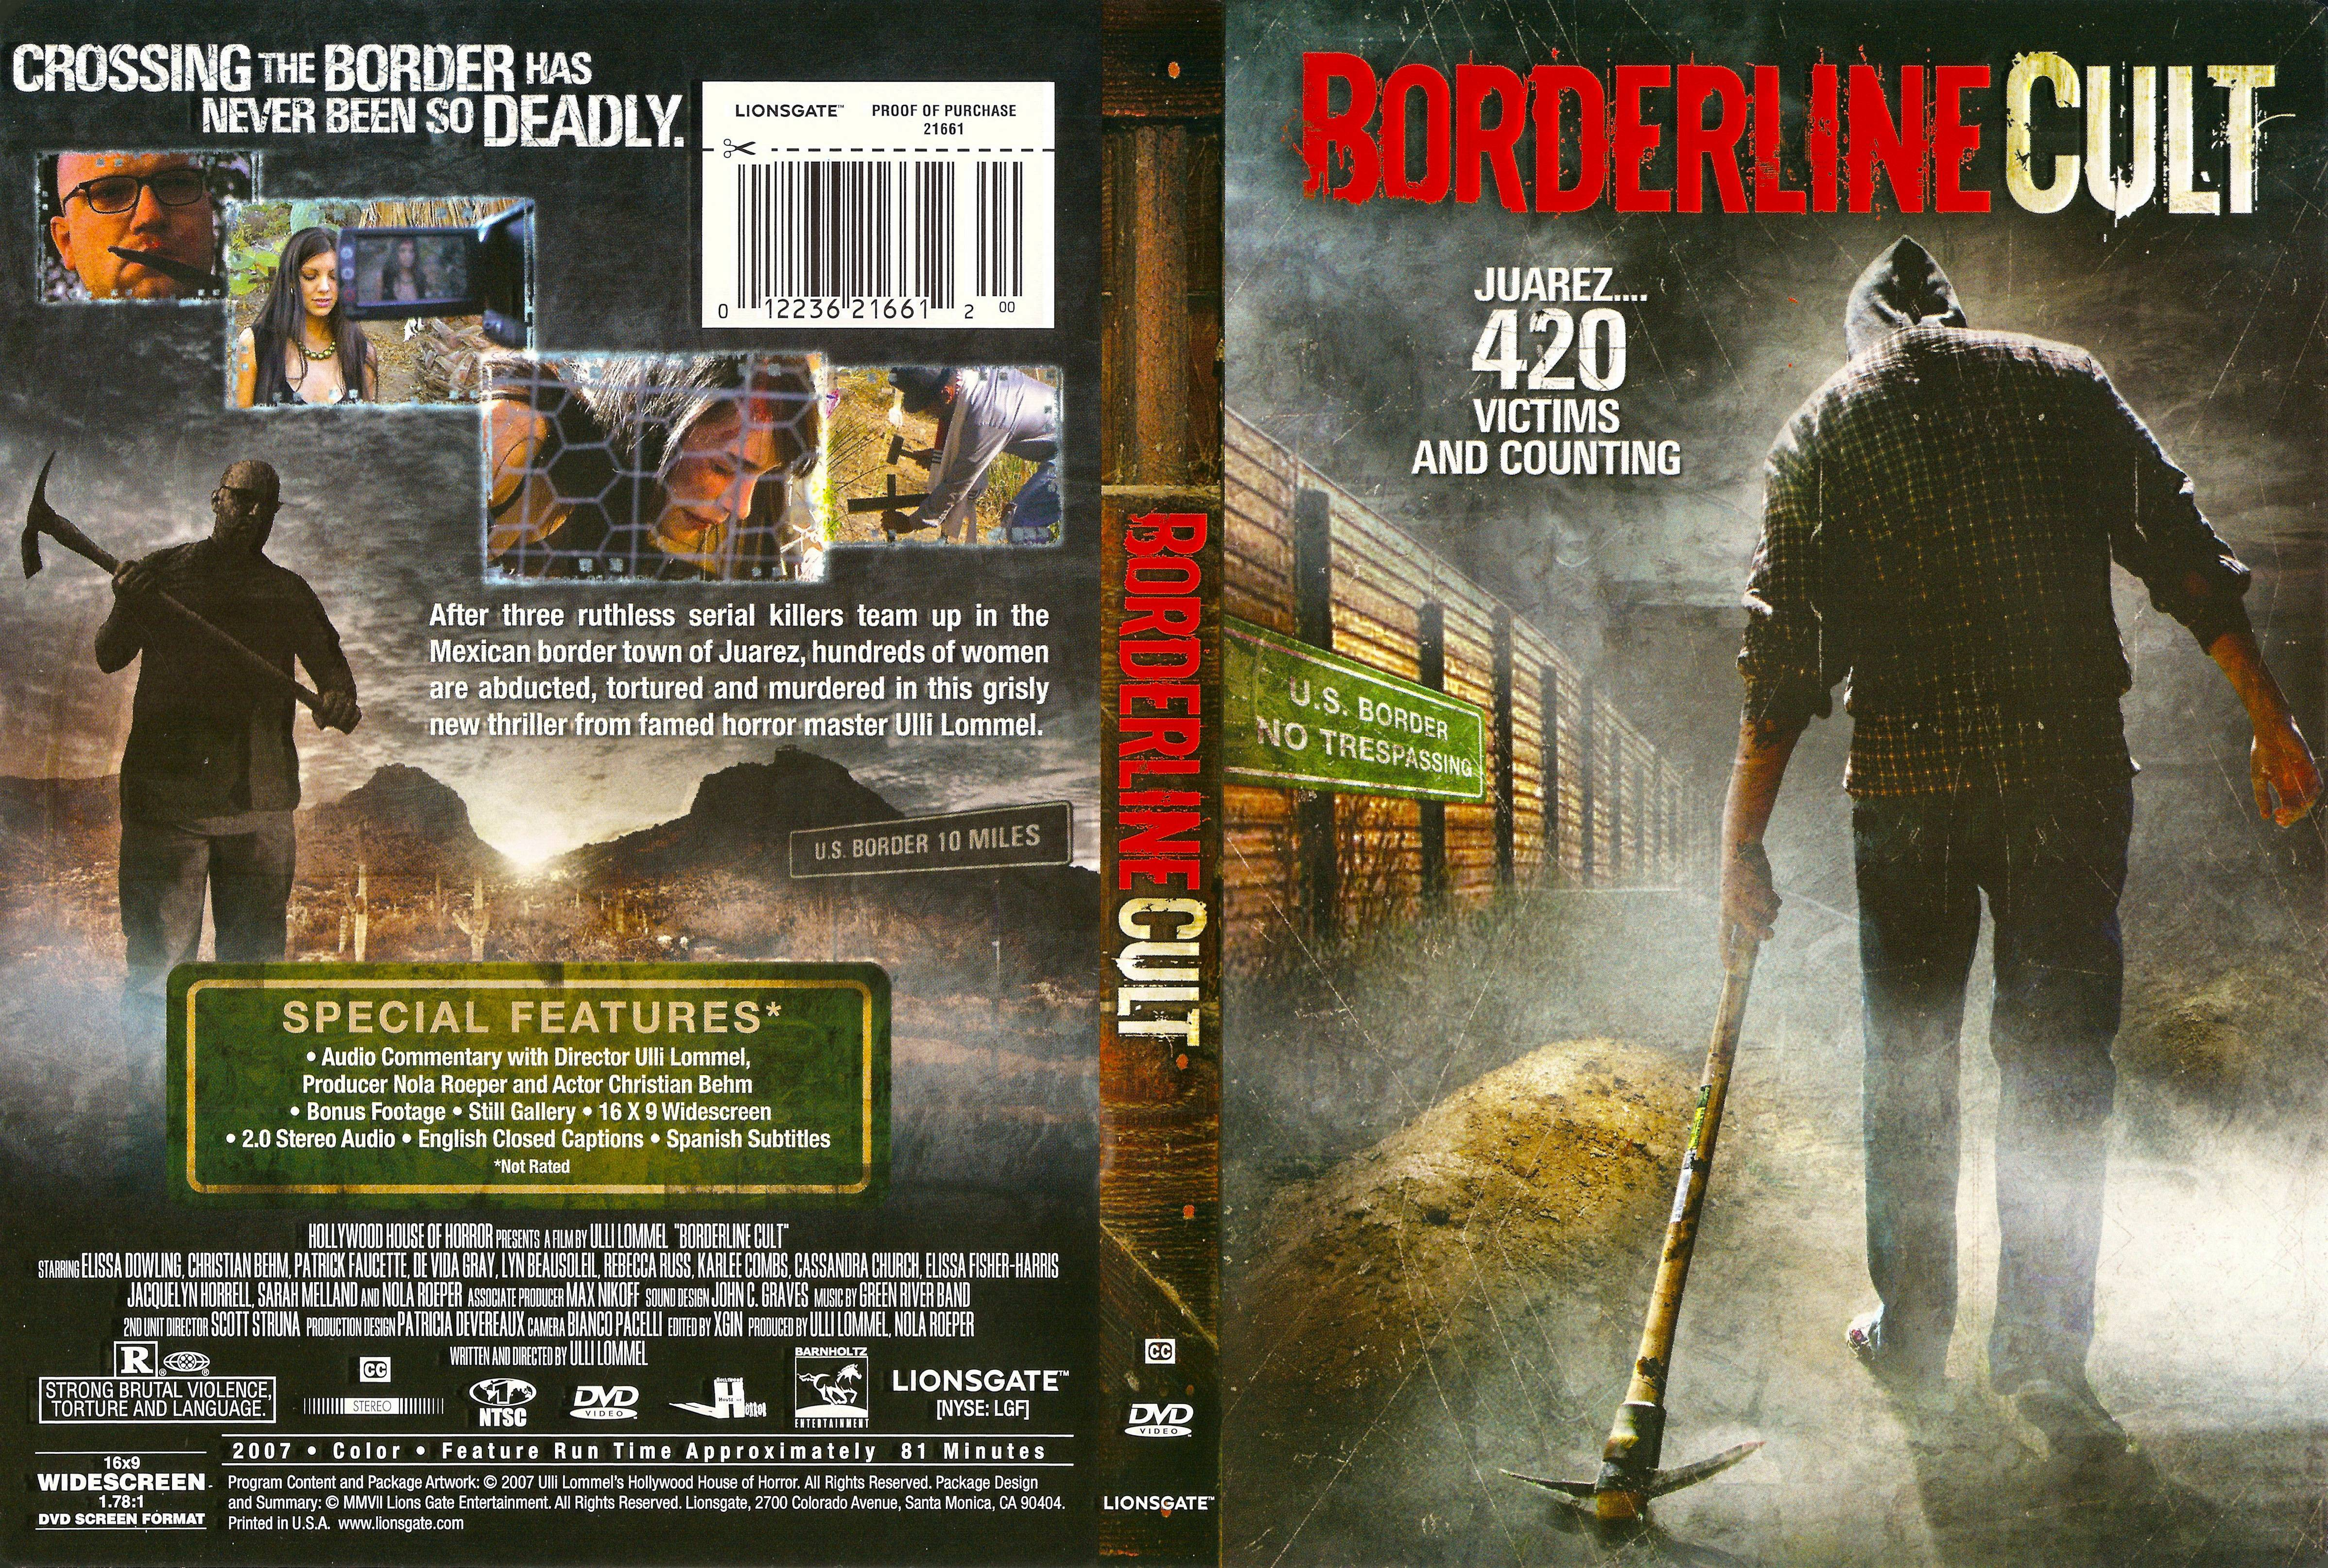 borderline cult full movies download movies online